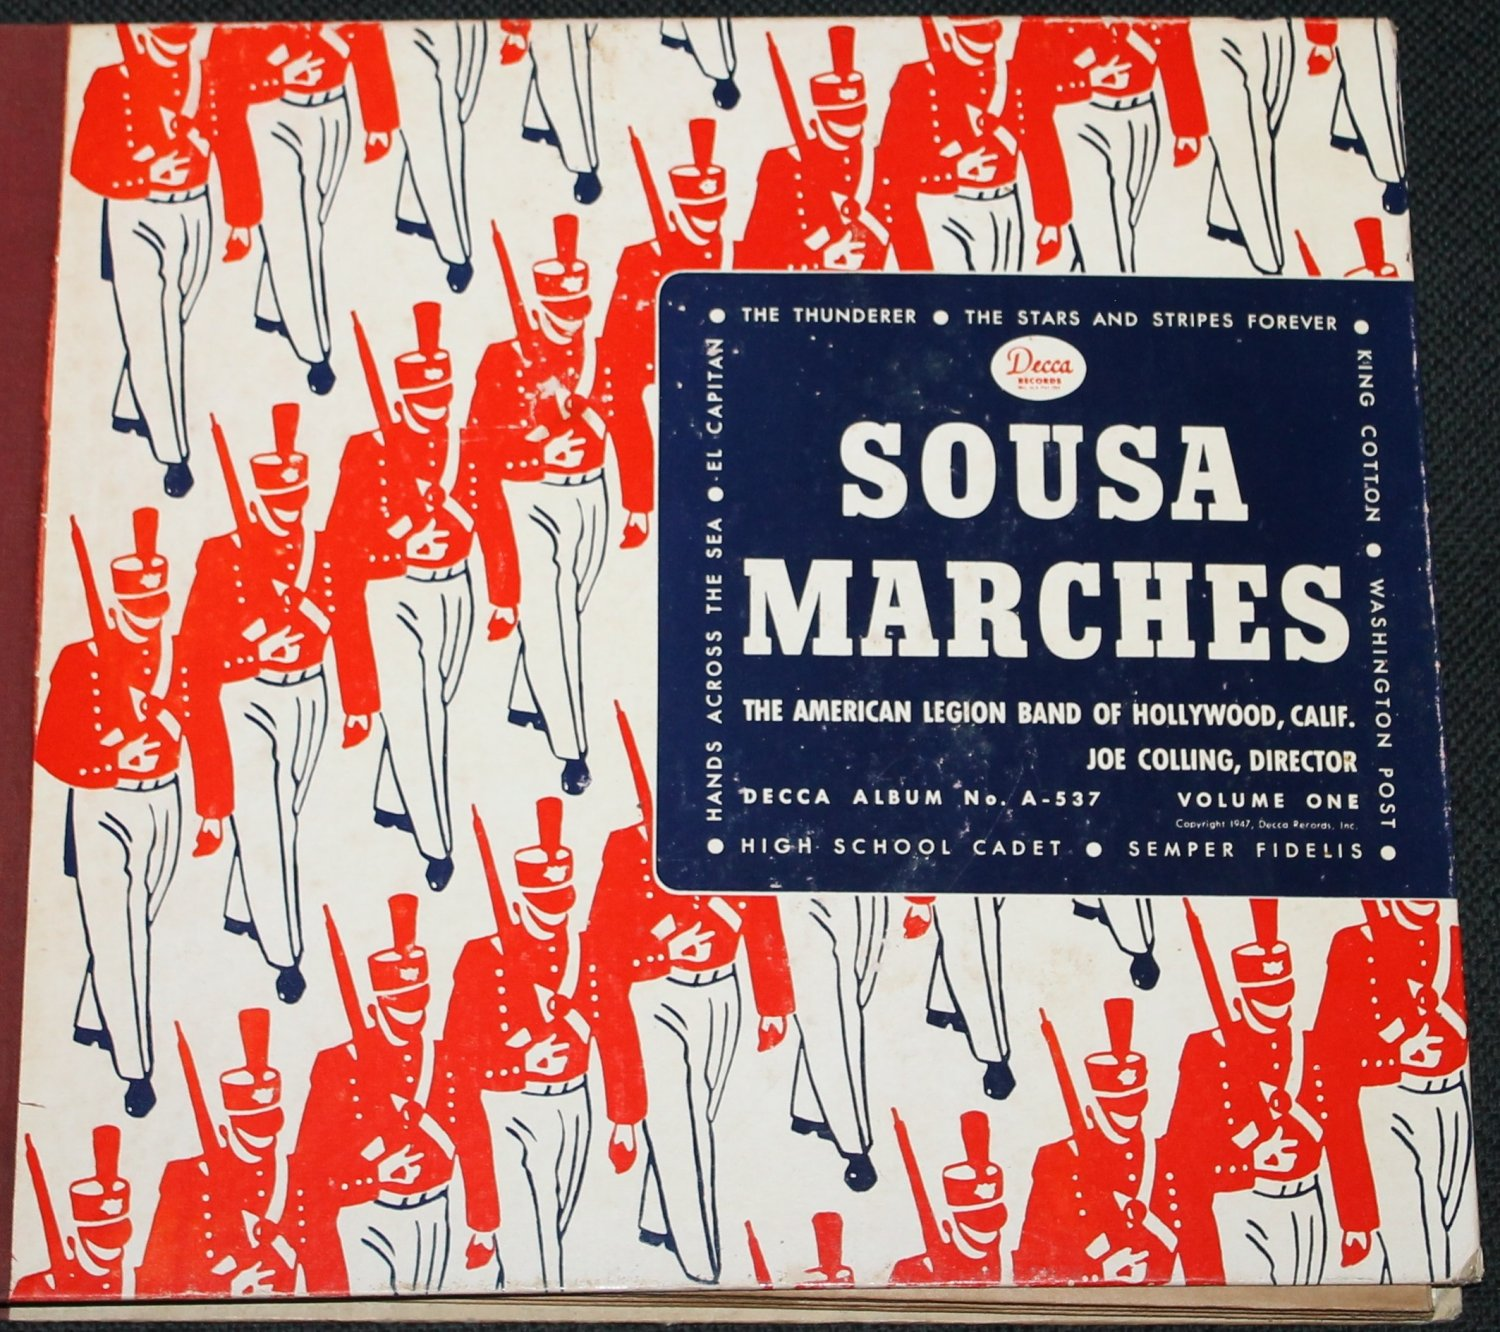 Sousa Marches Volume 1 record set - American Legion Band of Hollywood, CA